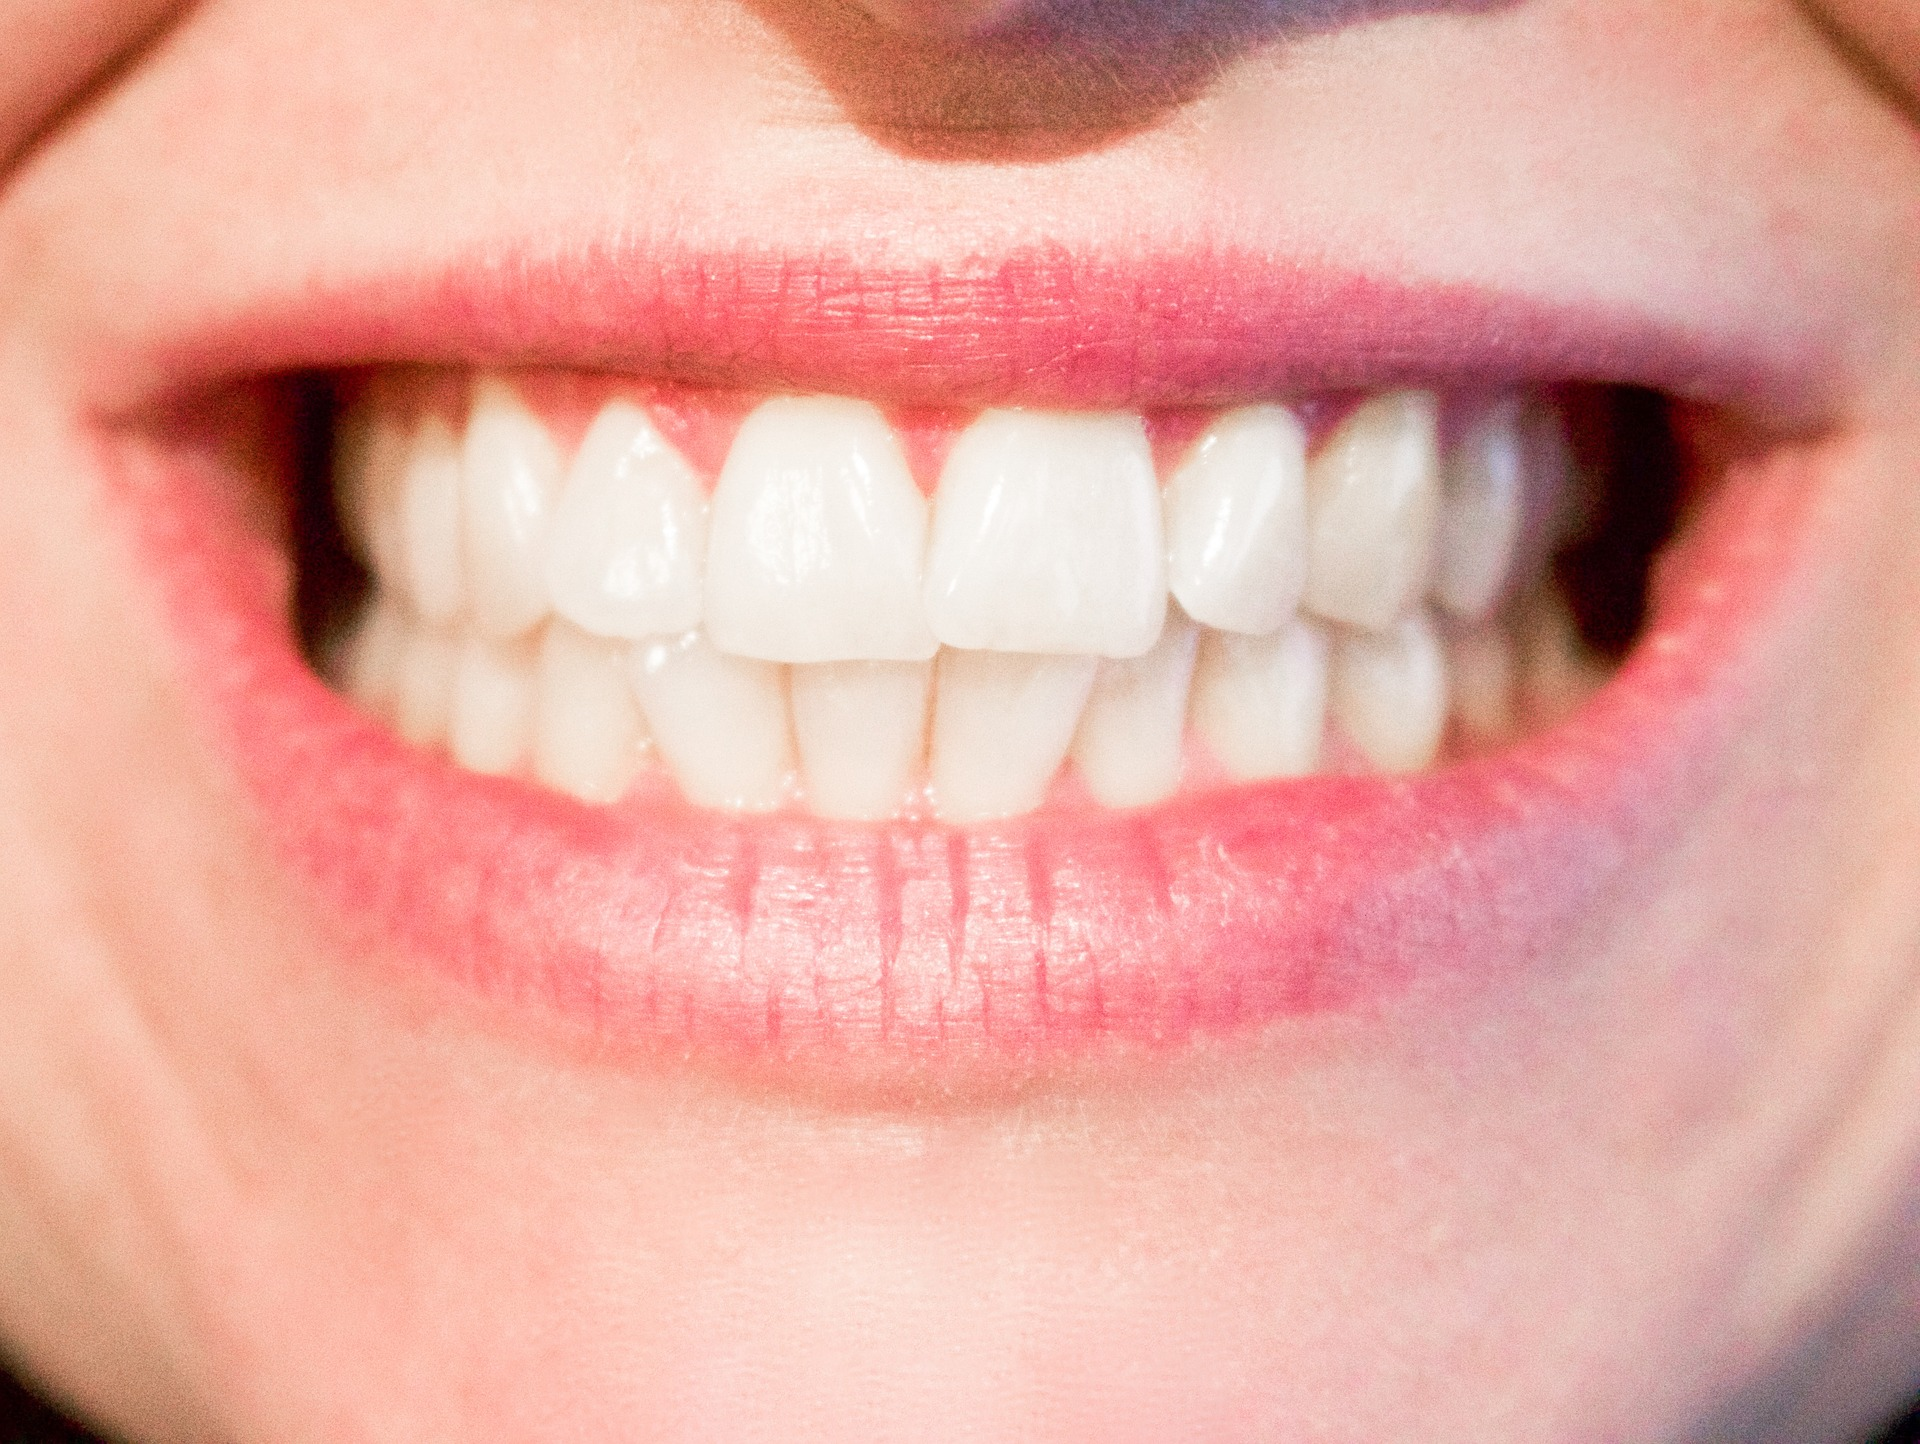 Close up of teeth smiling. There are certain dental hygiene habits that drive dental professionals insane.